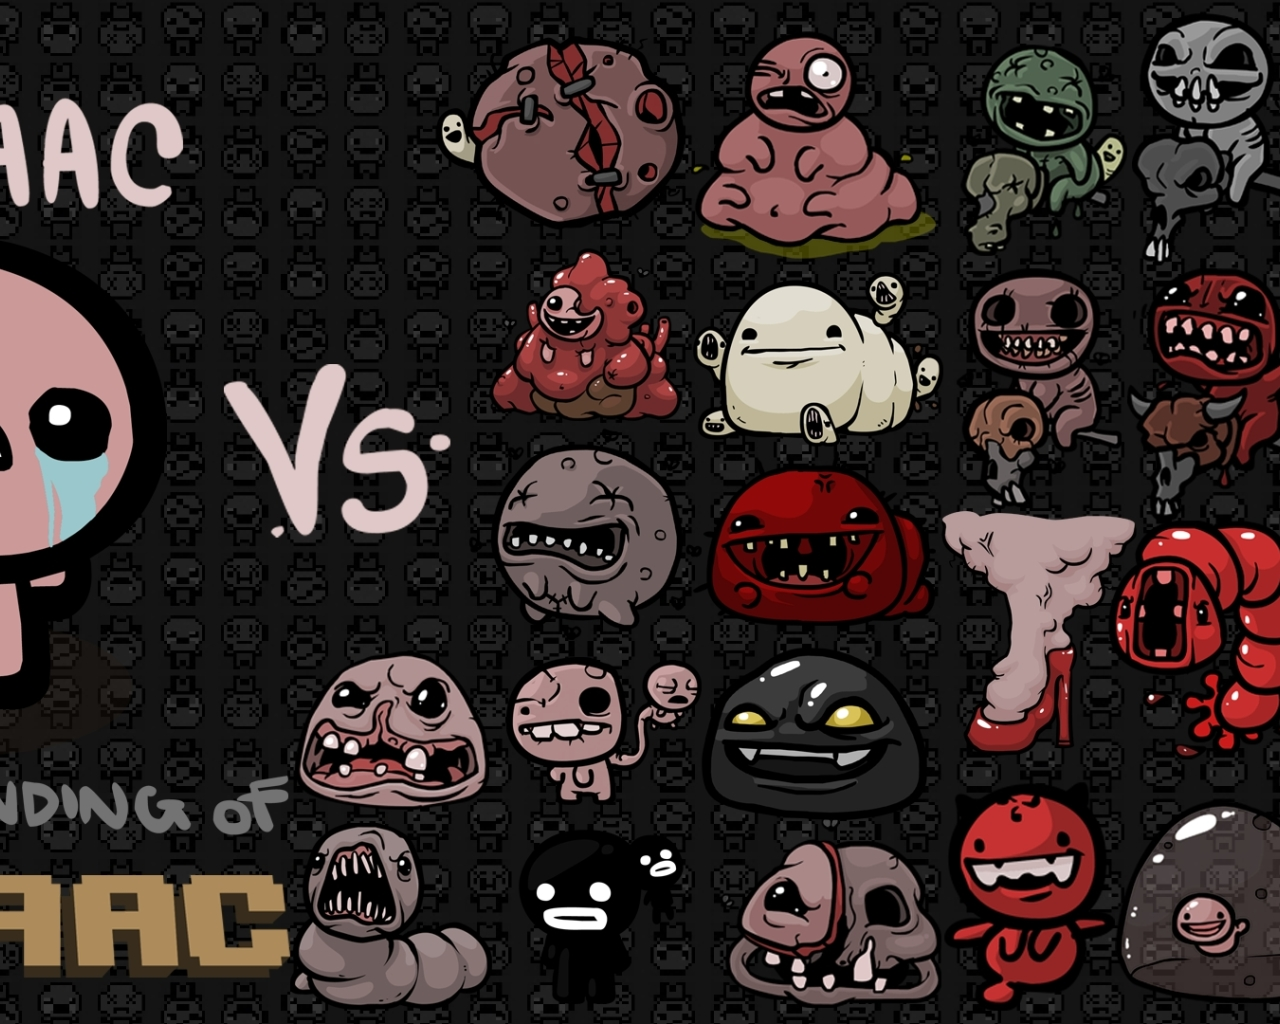 1280x1024 The Binding Of Isaac Characters Tears 1280x1024